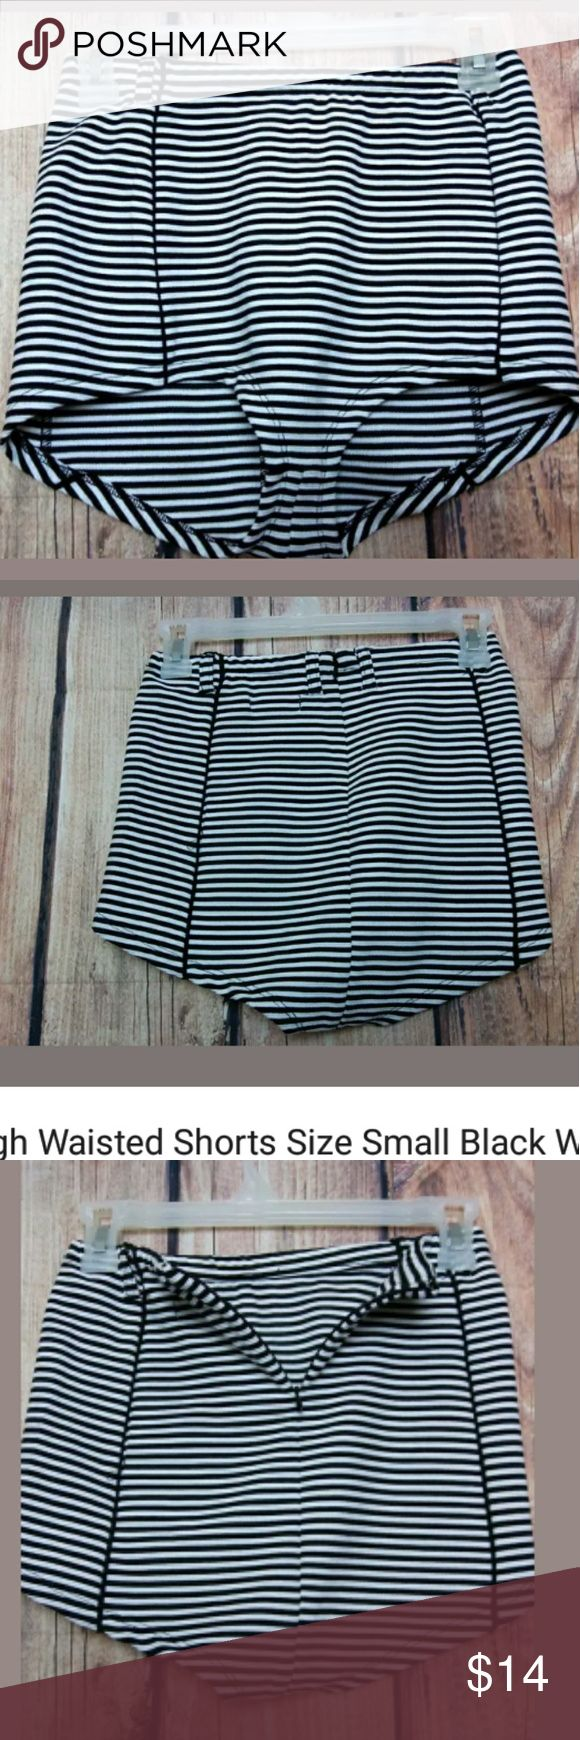 """High Waisted Shorts Size Small Black White Striped High Waisted Shorts Size Small Black White Striped Short Shorts CooperativeNew without tags  Waist: 12"""" across  Label have been black lined to prevent store returns  Smoke/Pet Free Home              Bin#6 Cooperative Shorts"""